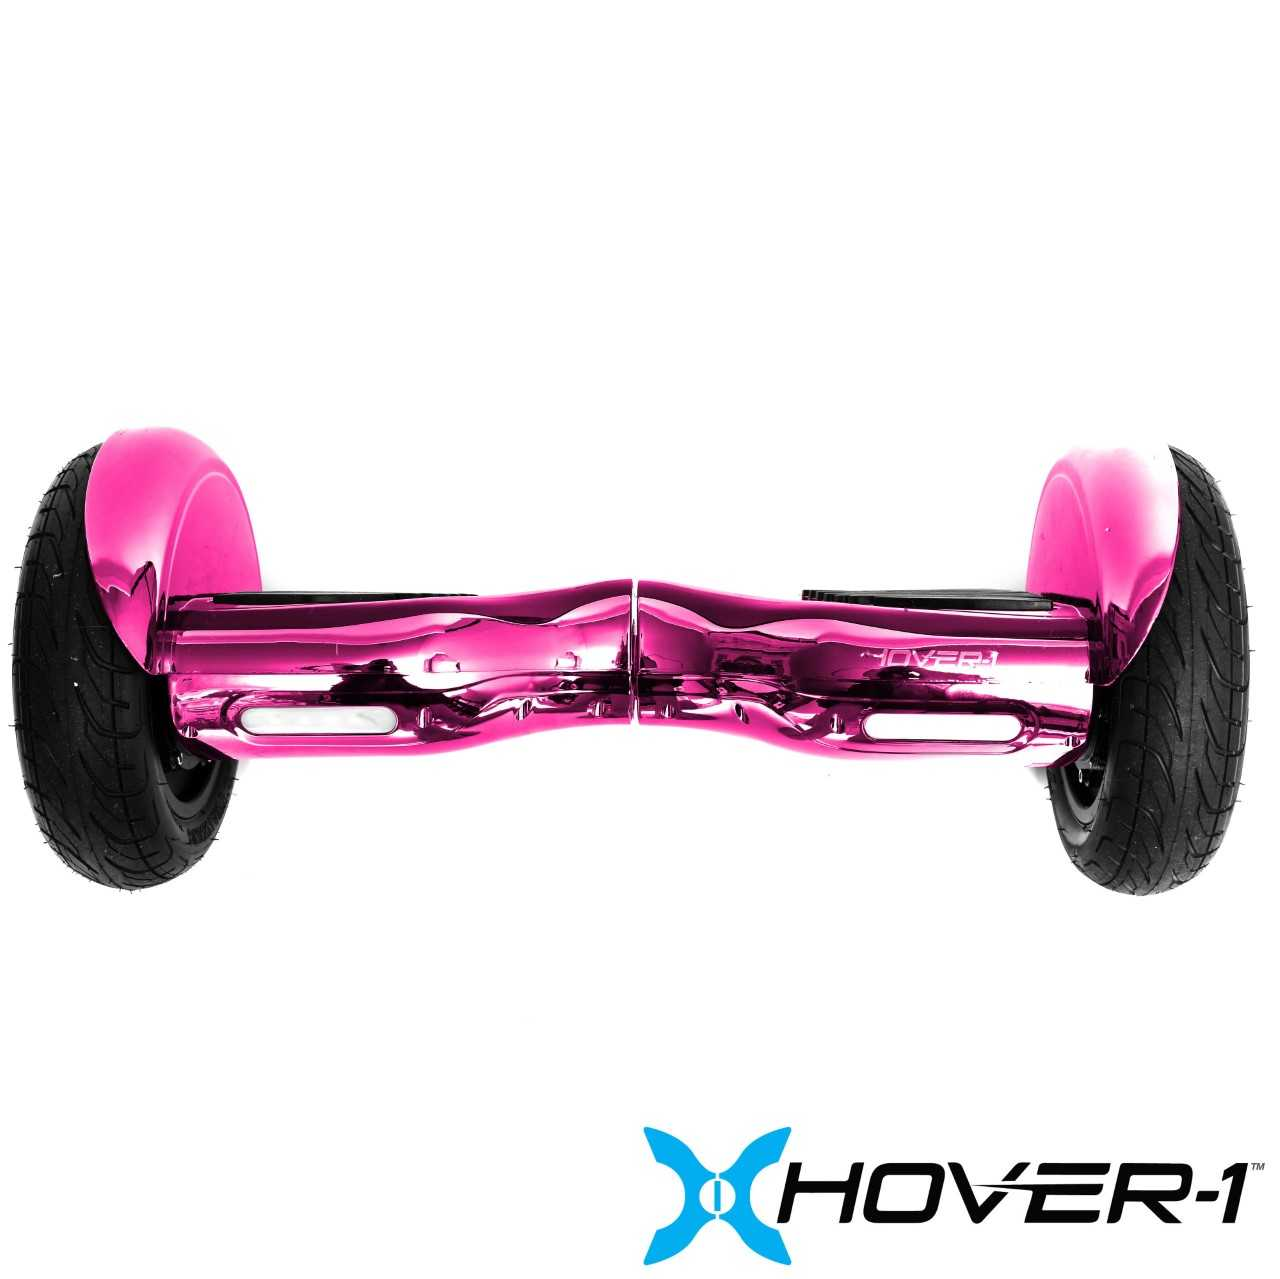 Hover-1 Titan UL Certified Electric Hoverboard w/ 6.5 Wheels, LED Lights, Bluetooth Speaker, and App Connectivity - Pink